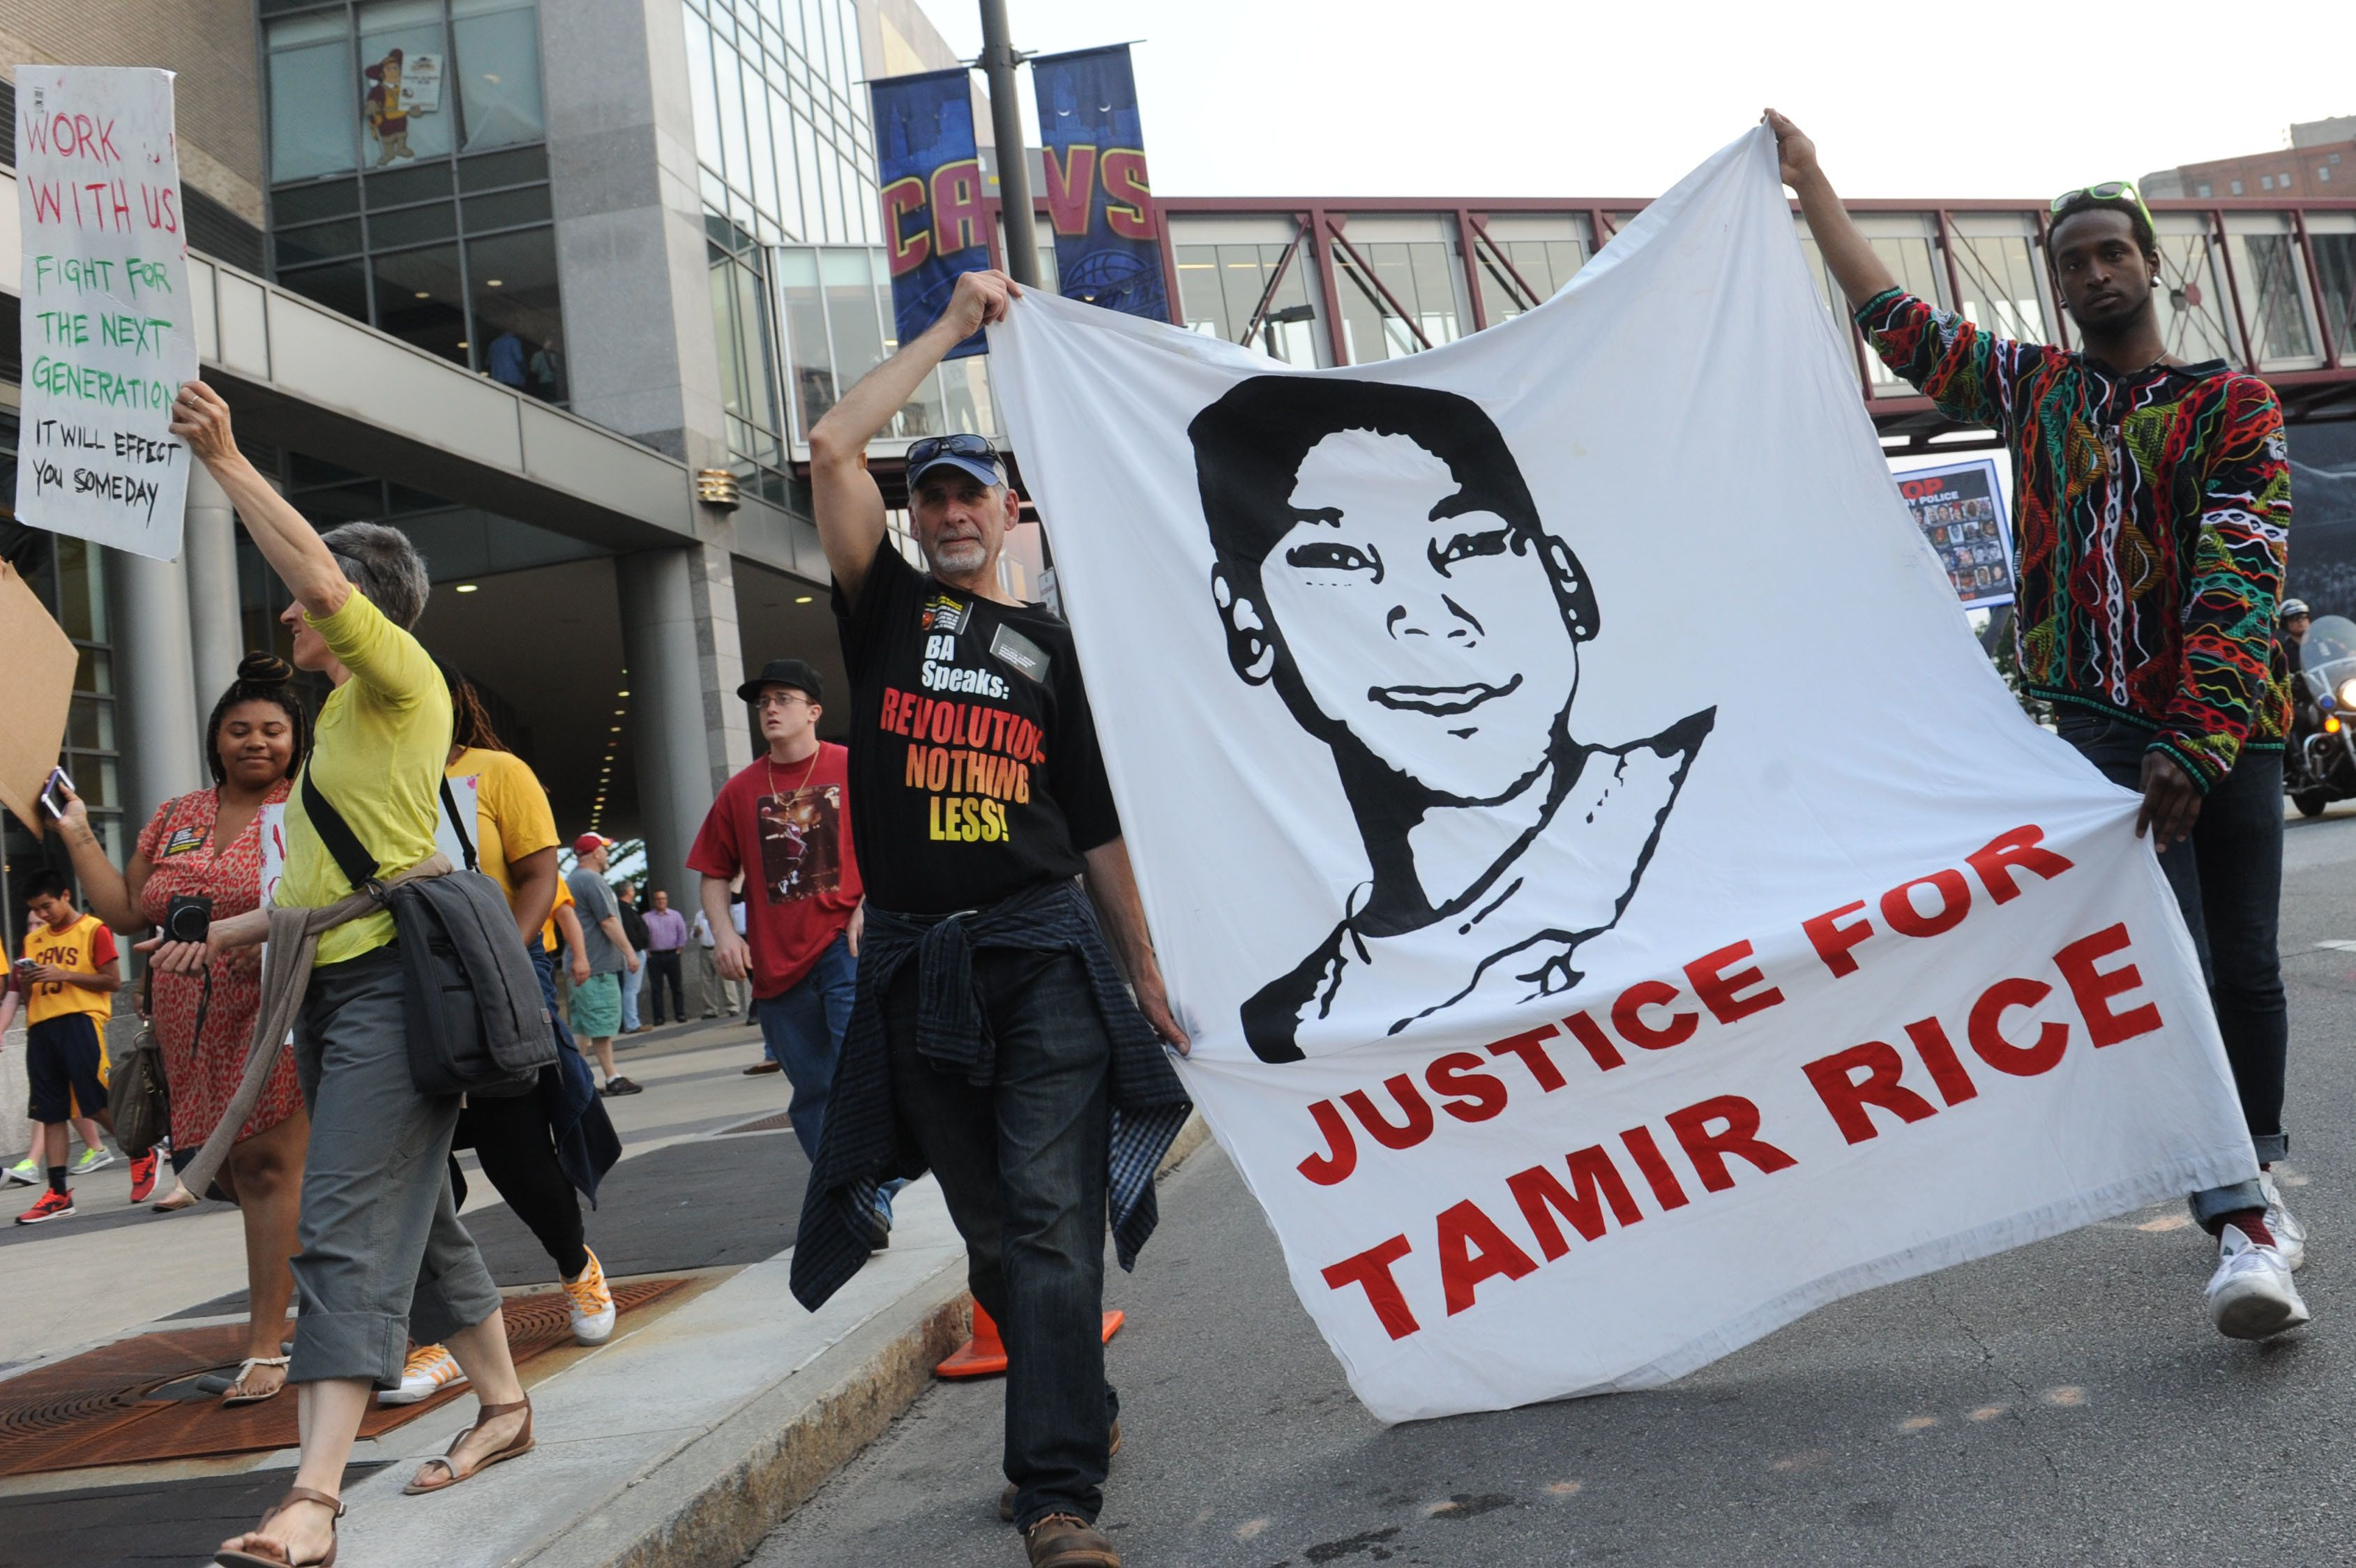 Jun 9, 2015; Cleveland, OH, USA; Tadar Muhammad (right) and Jeremy Brustein (left) demonstrate in support of Tamir Rice outside of Quicken Loans Arena prior to game three of the NBA Finals. Mandatory Credit: Ken Blaze-USA TODAY Sports